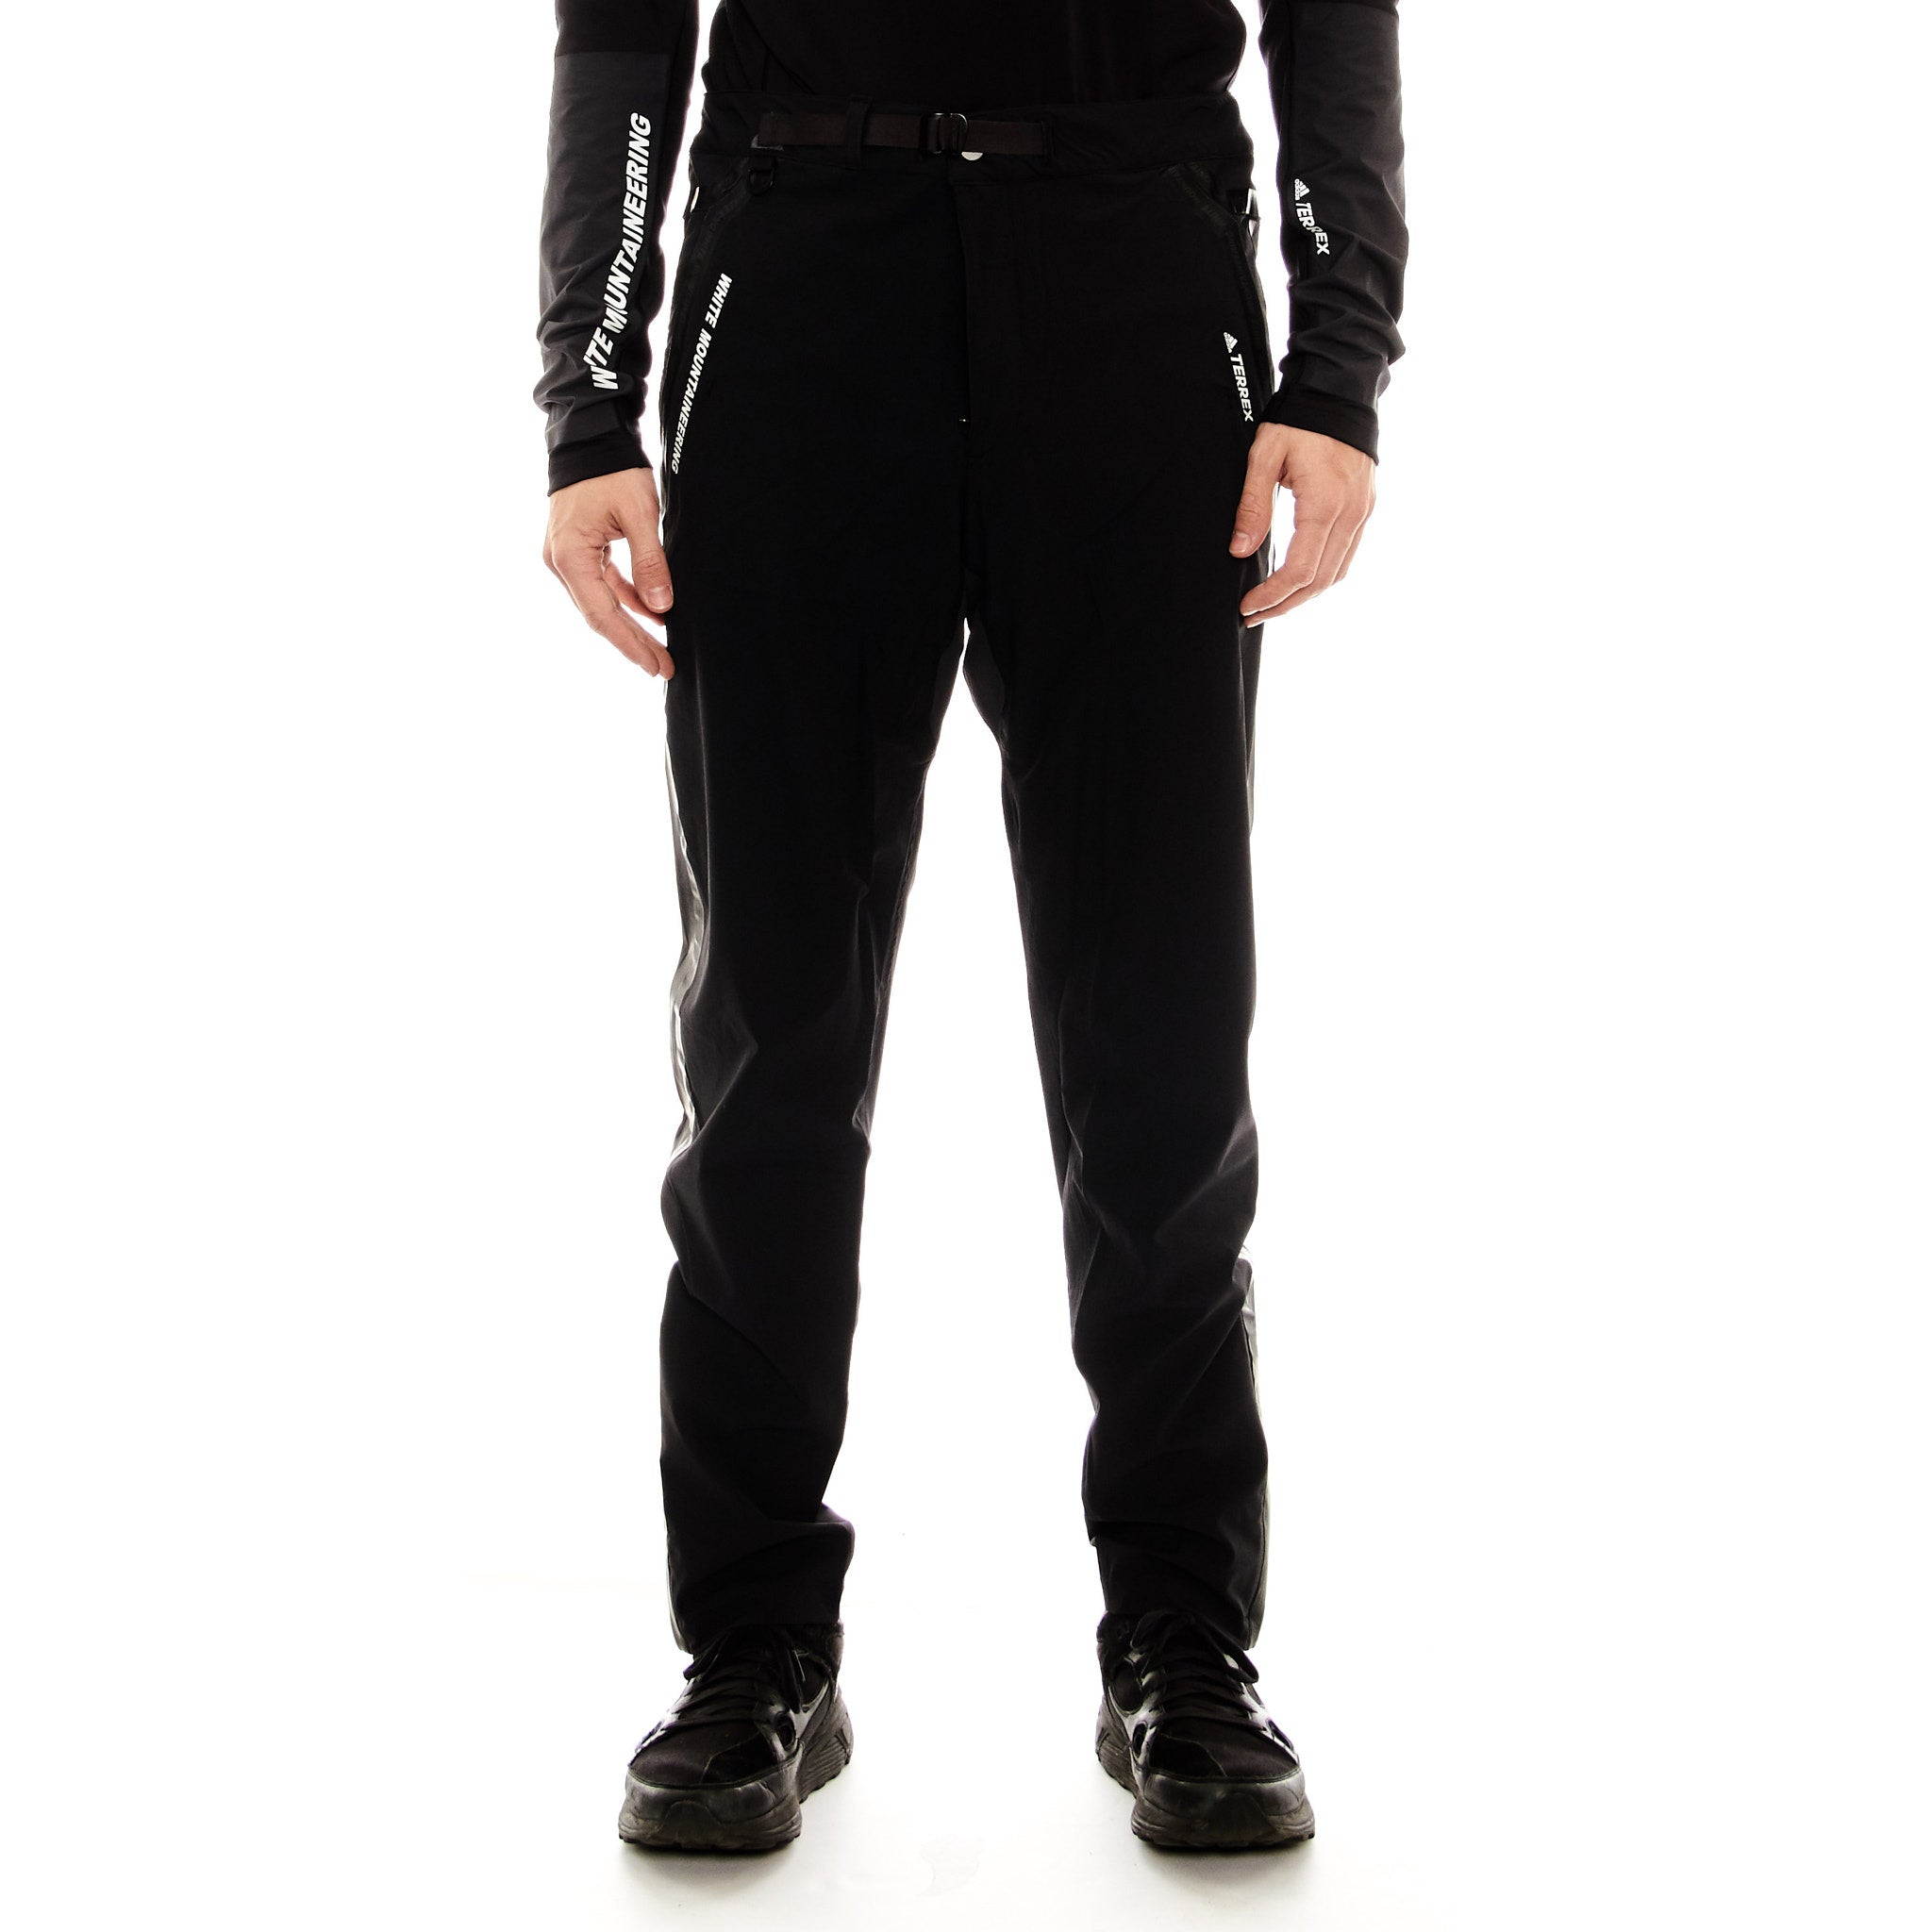 WM SLIM PANTS